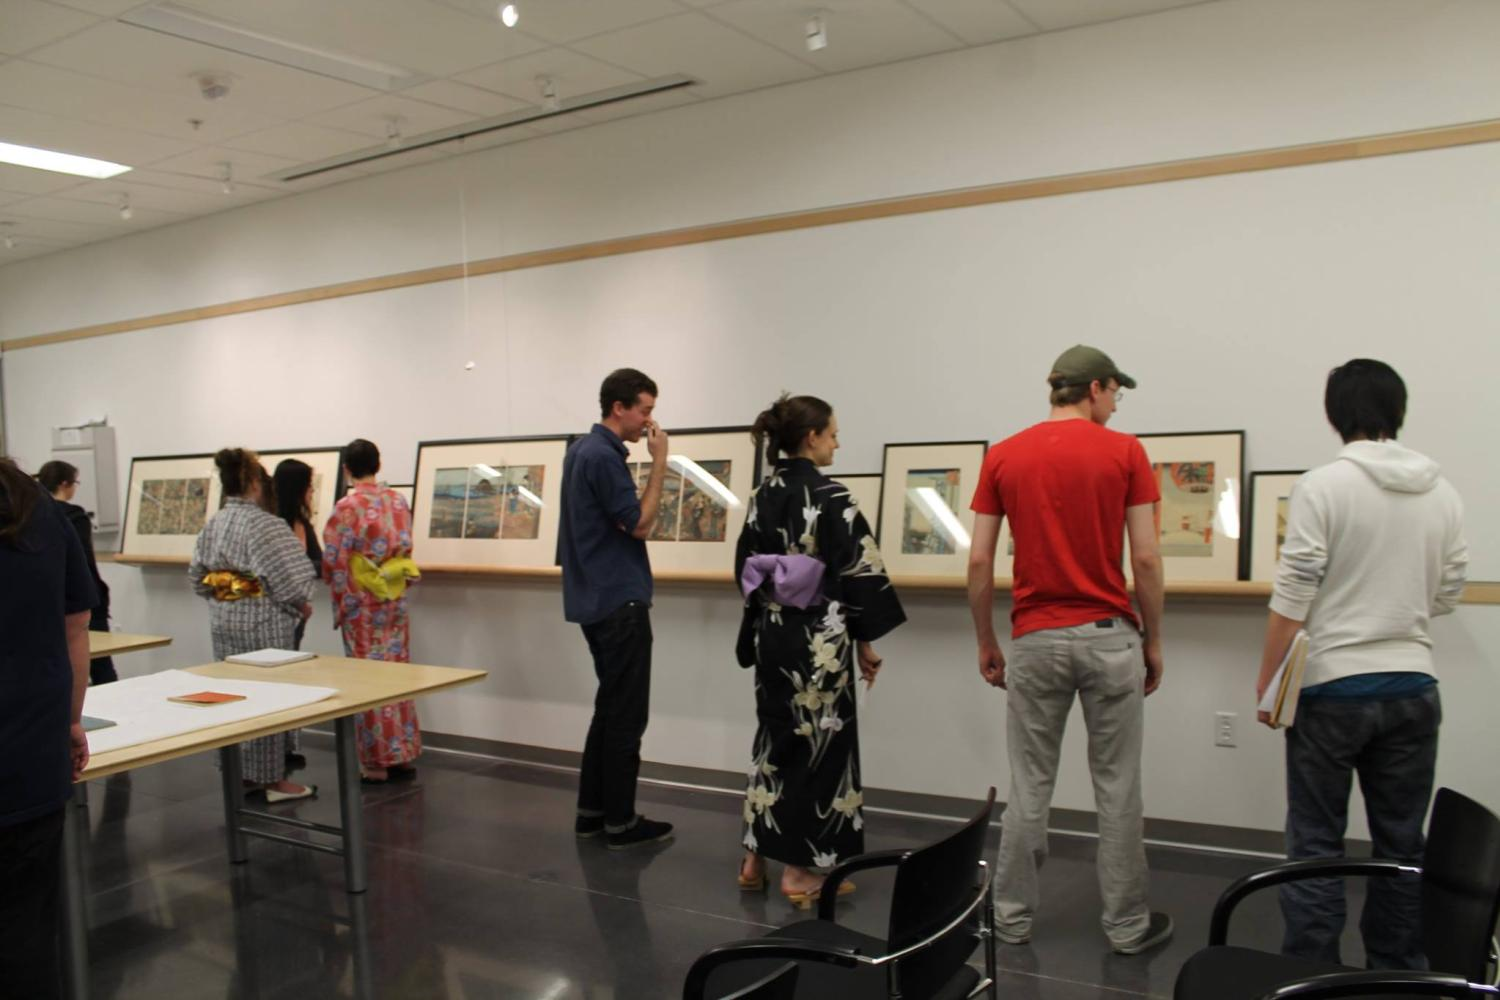 Students, some wearing kimonos, view framed prints.